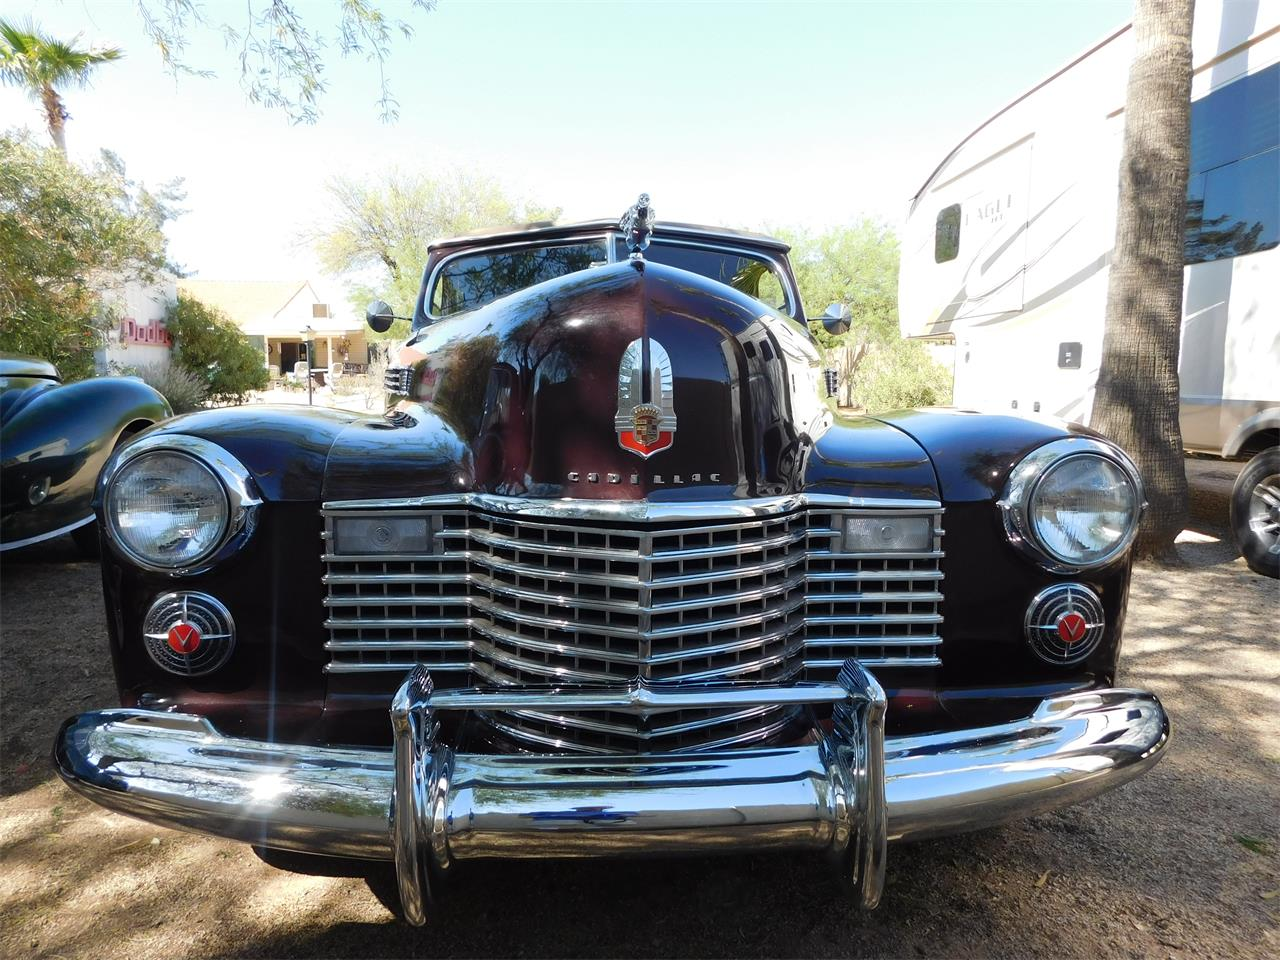 1941 Cadillac Convertible (CC-1089719) for sale in Glendale, Arizona